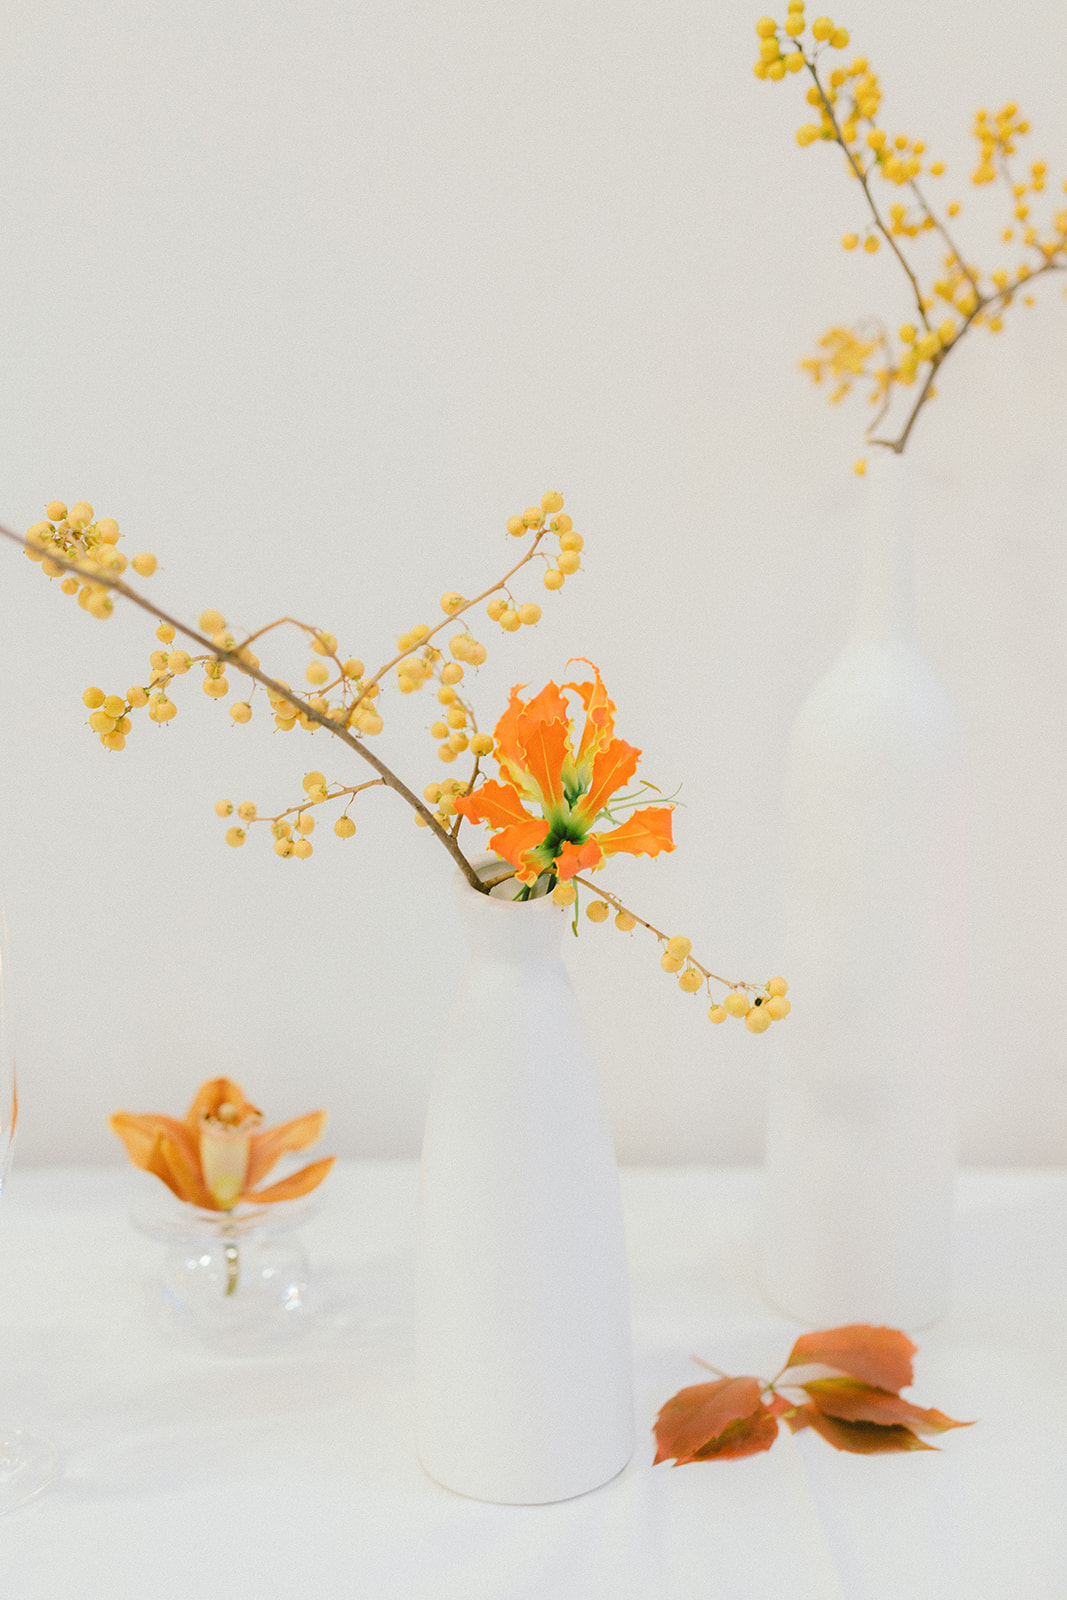 Modern Art Wedding with Orange Flowers on White Reception Table Decor in Vancouver